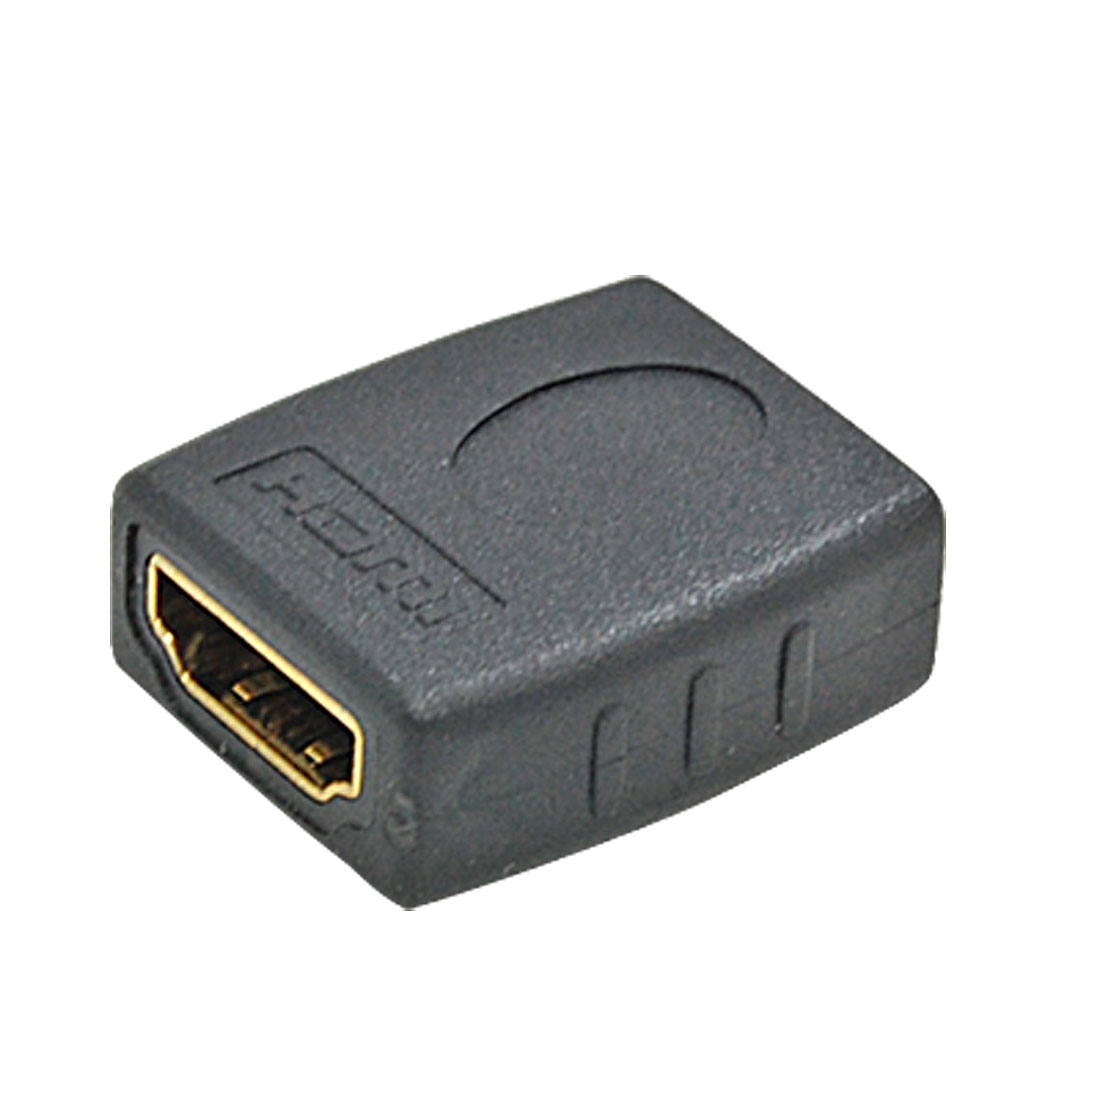 HDMI Female to Female Video Adapter Connector